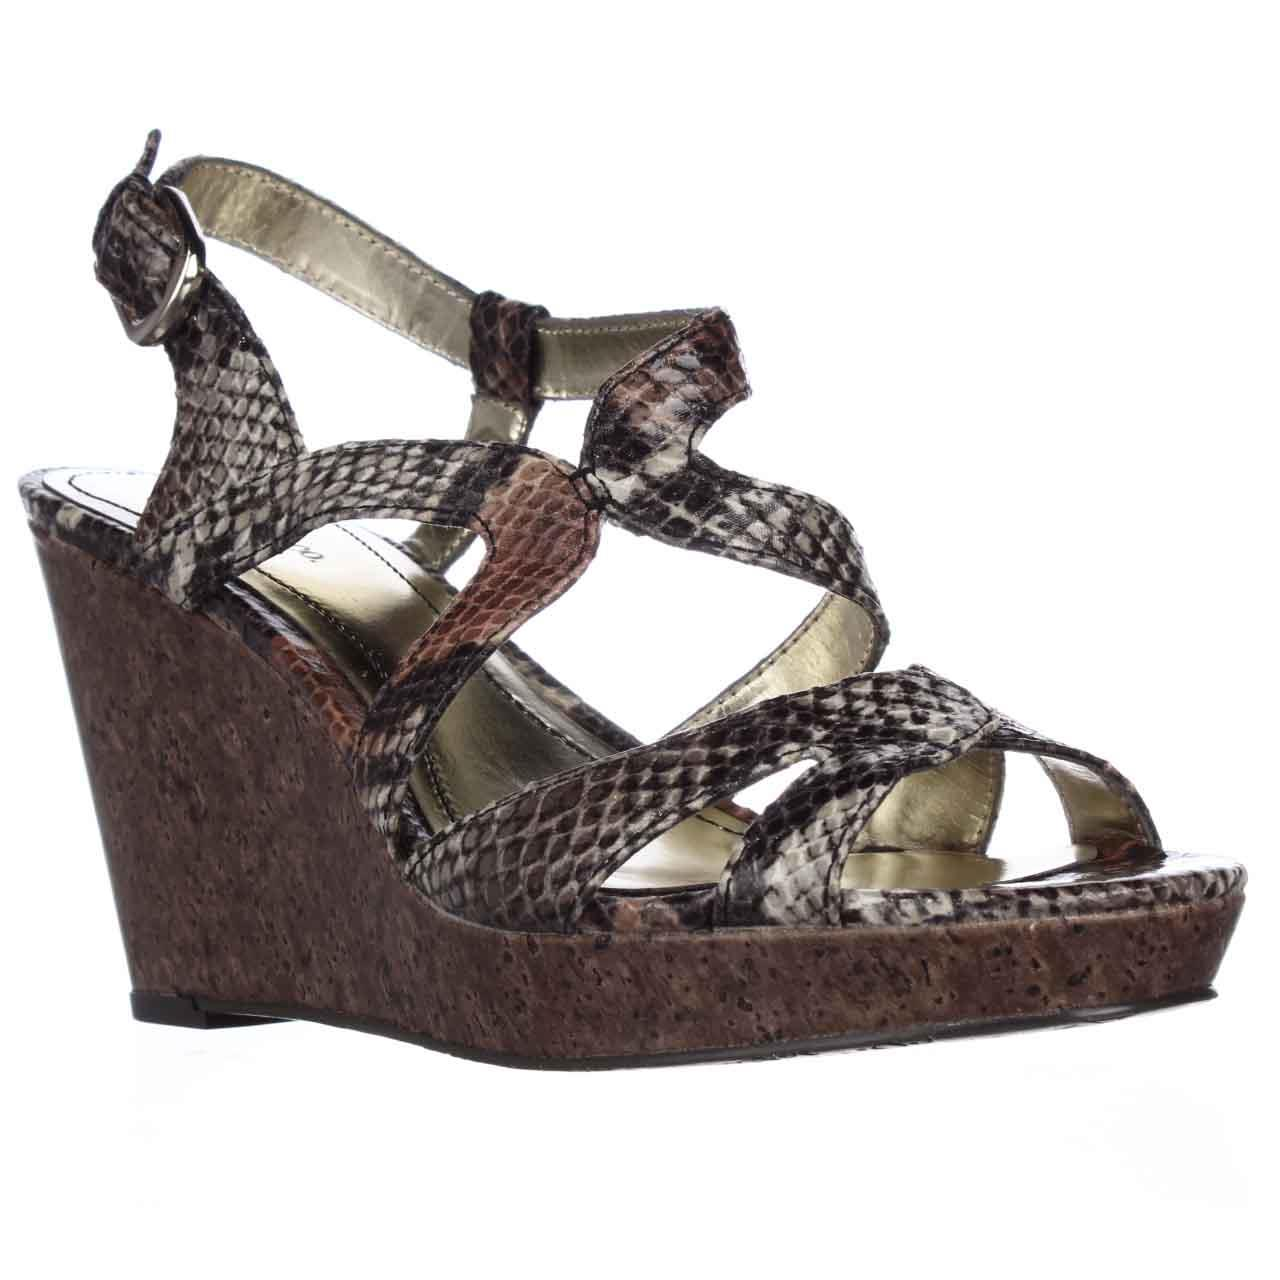 Womens S.C. Allyssa Strappy Wedge Sandals - Camel Python